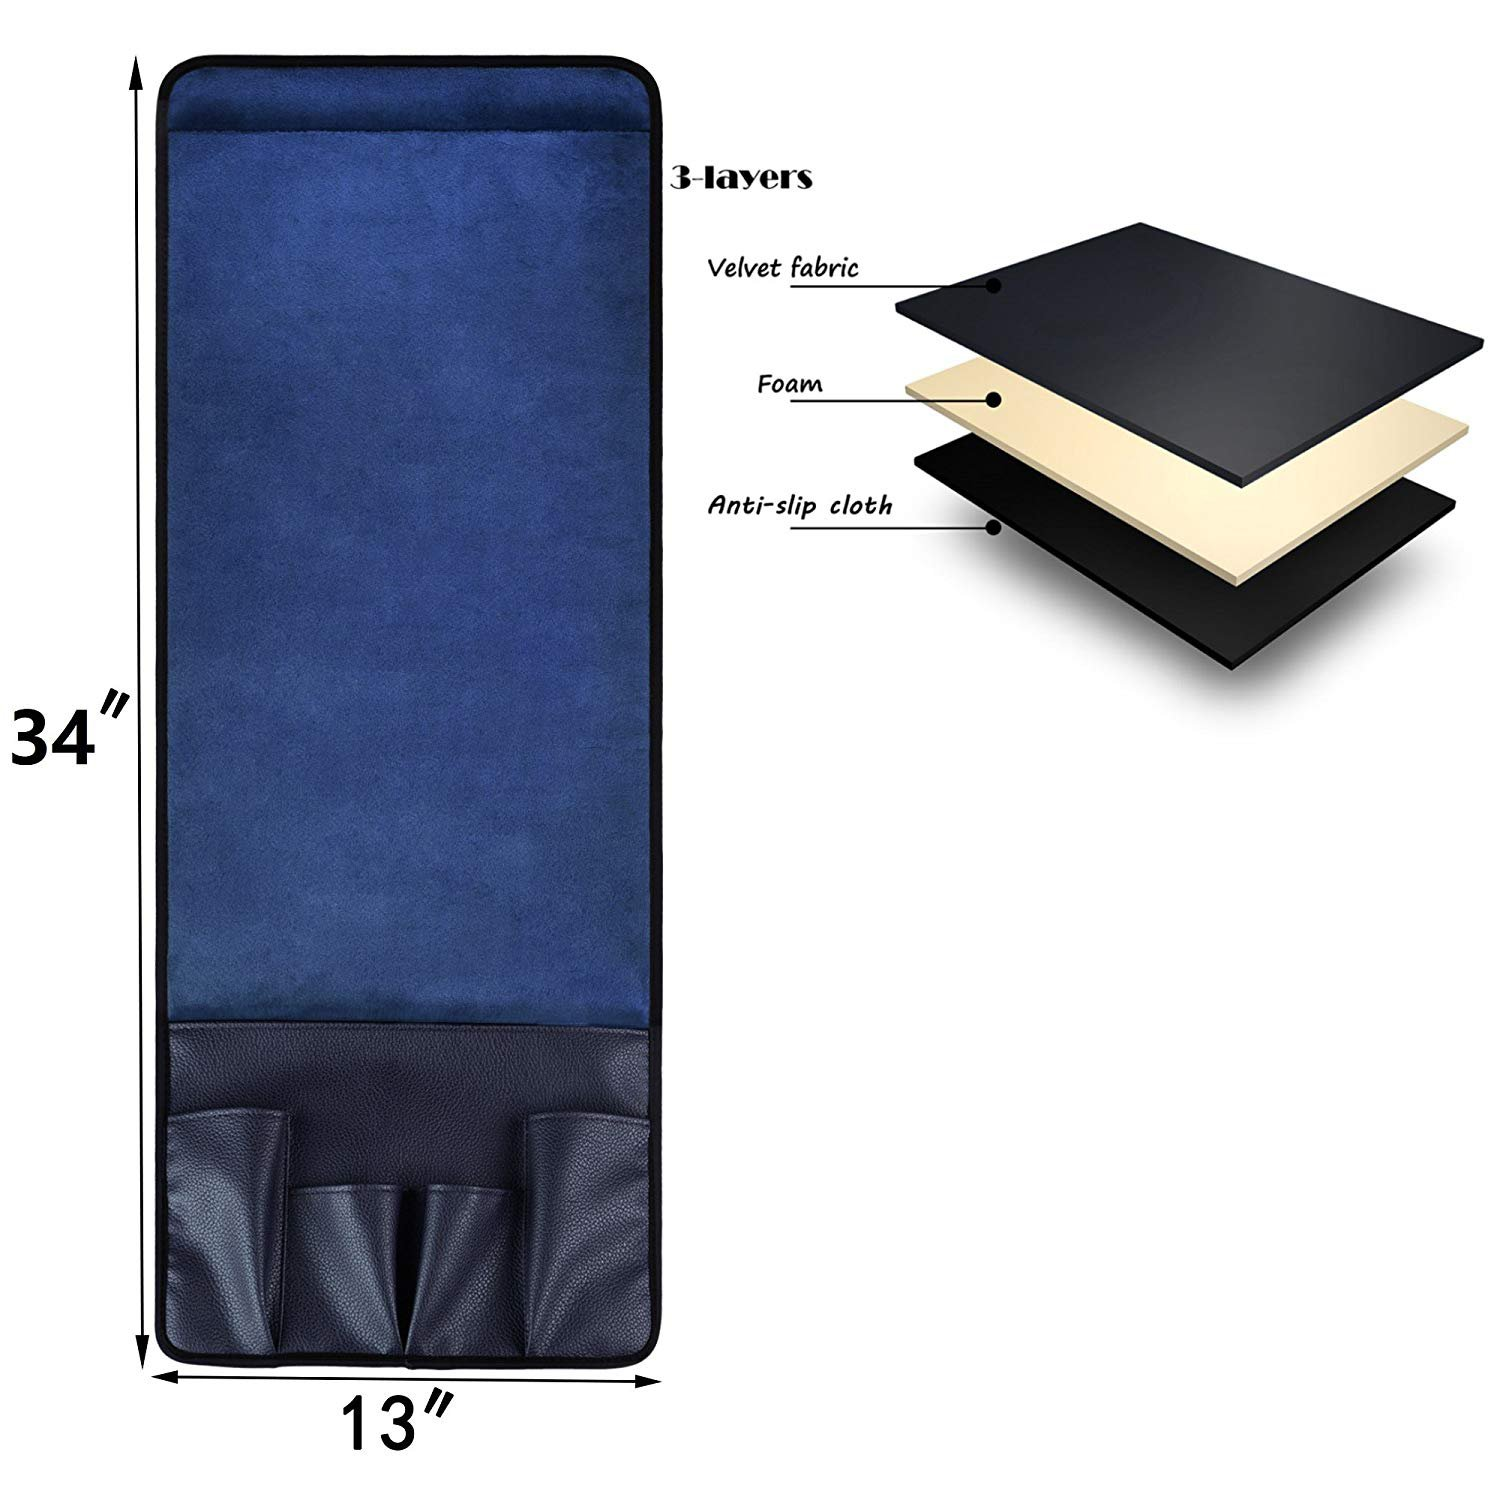 Magazines Pencil or TV Remote Control Holder Wakaka Velvet Non-Slip Epoxy Sofa Couch Chair Armrest Soft Caddy Organizer Cell Phones Books Brown